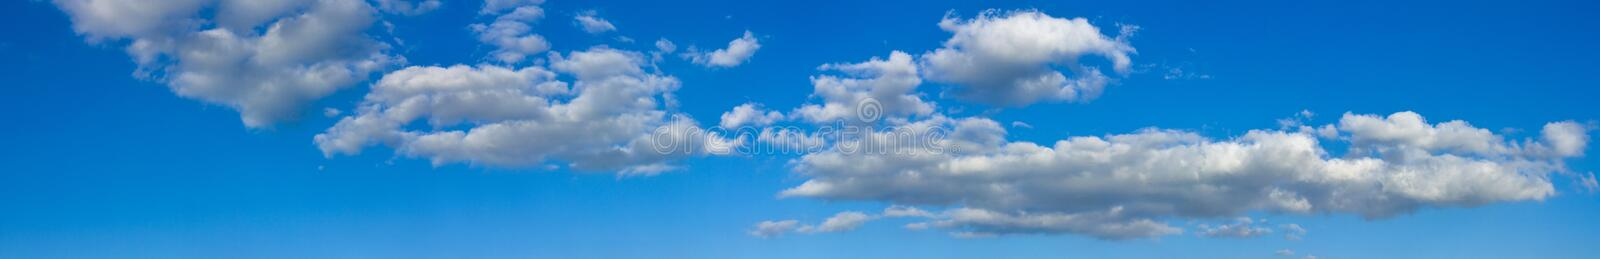 Blue sunny sky with white clouds landscape banner stock images